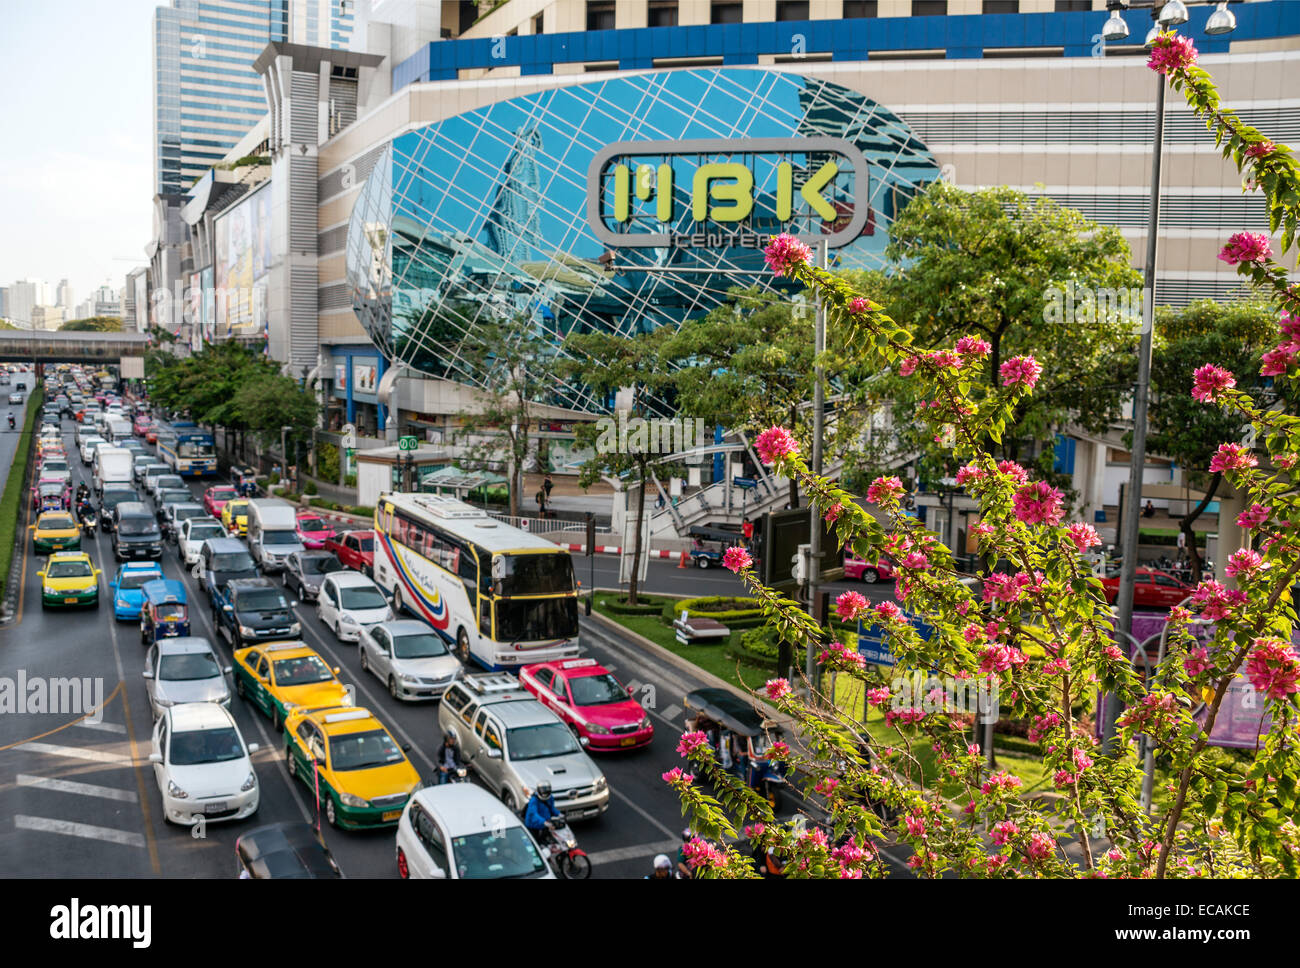 Streetscape with traffic jam in the city centre in front of the MBK Building, Bangkok, Thailand Stock Photo